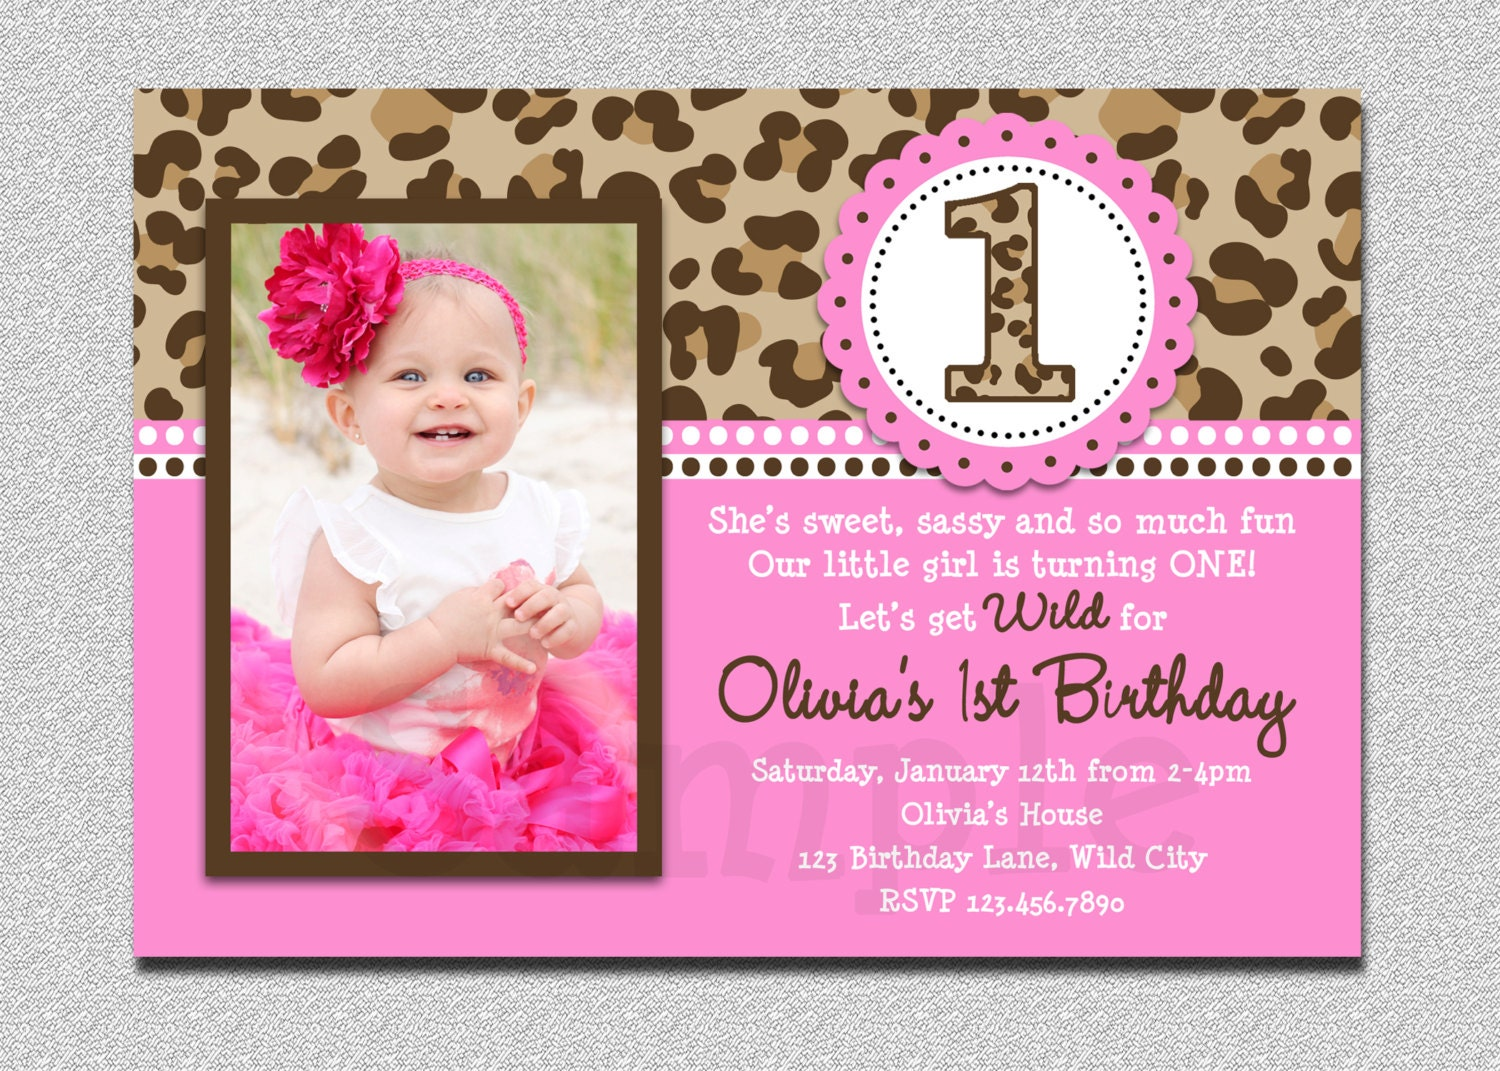 Leopard Birthday Invitation St Birthday Party Invitation - First birthday invitations girl online